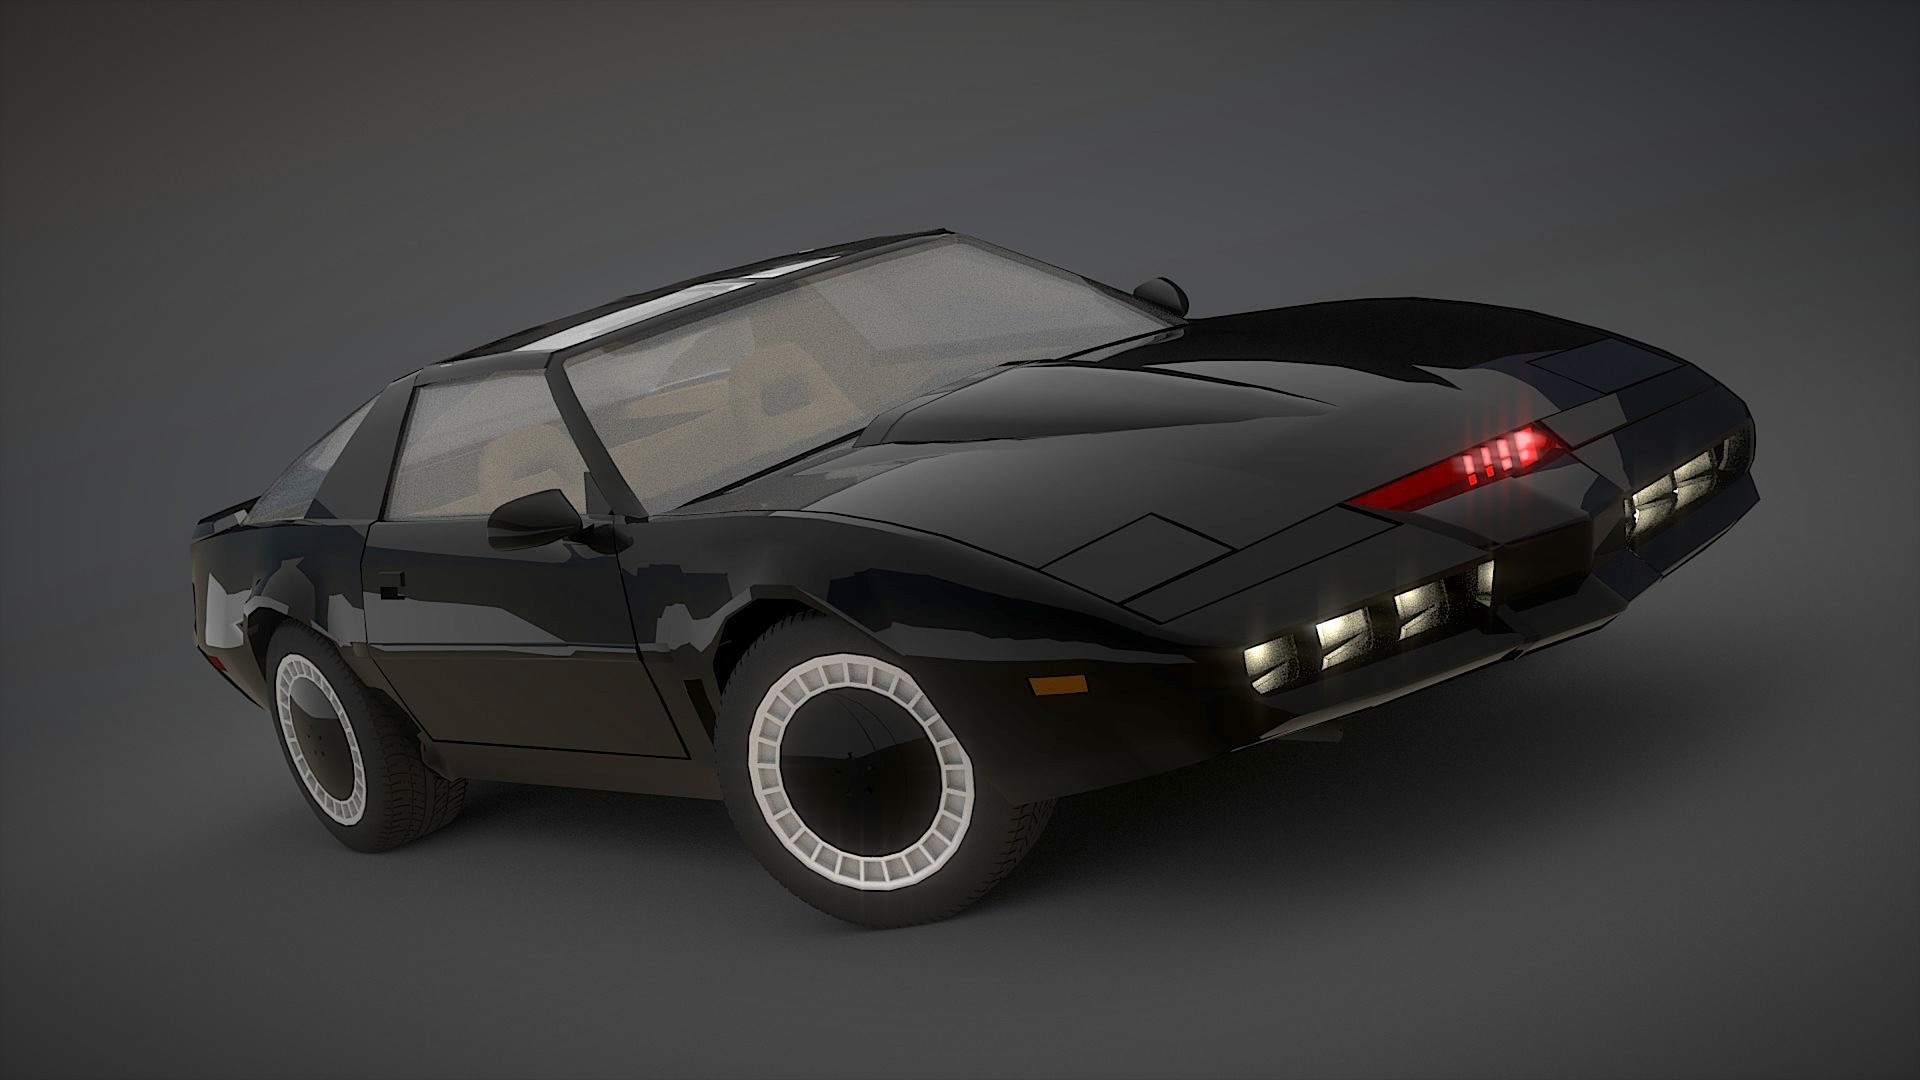 Knight rider kitt wallpaper wallpapersafari knight rider wallpaper knight rider backgrounds for pc 1920x1080 mozeypictures Images